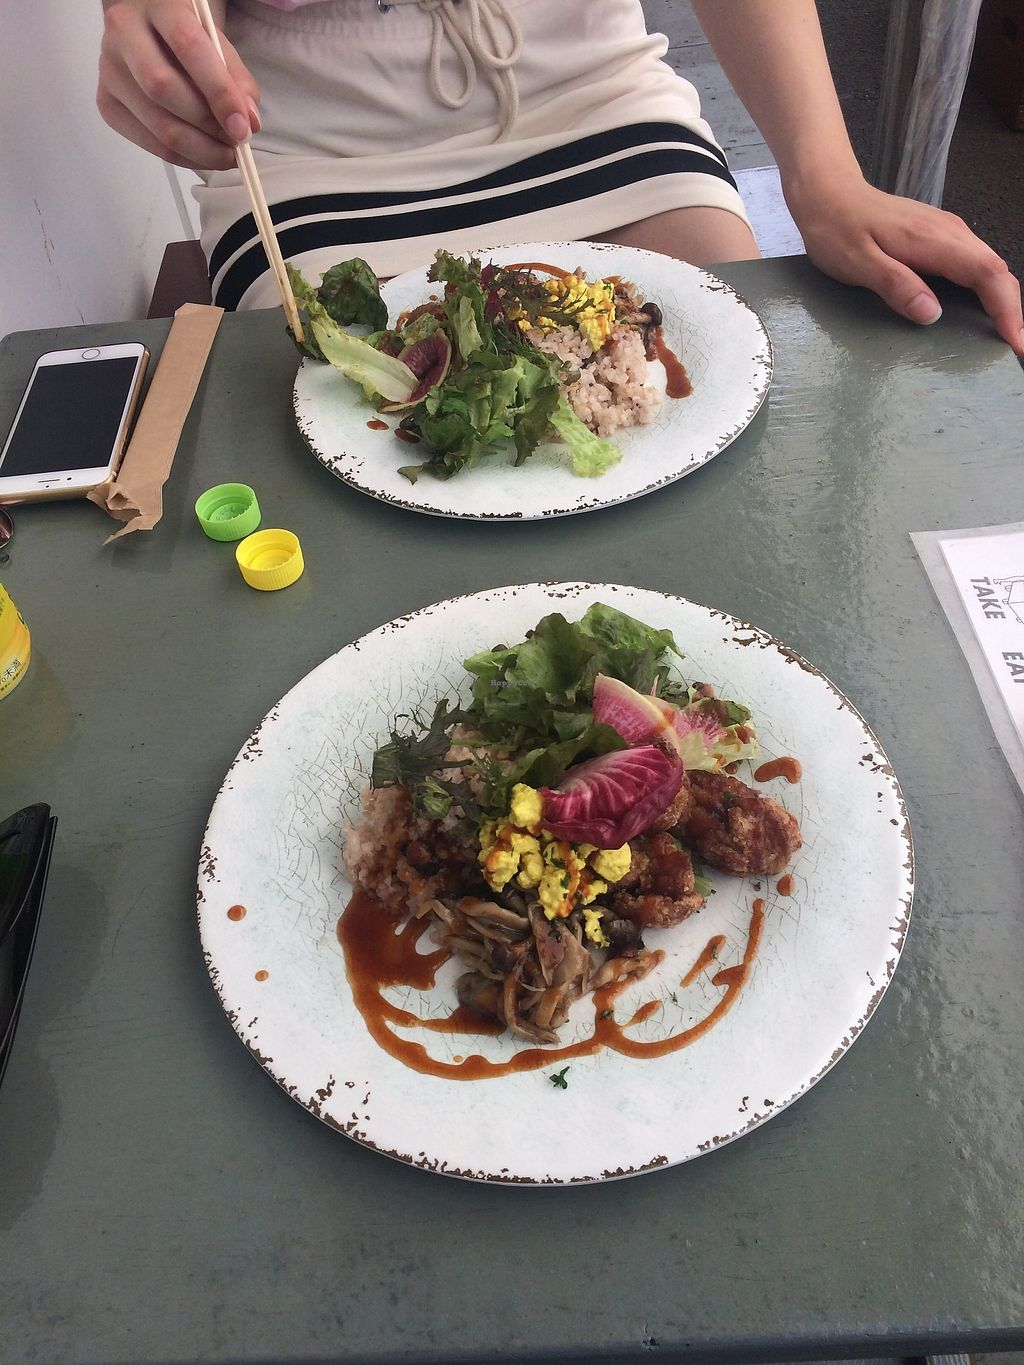 """Photo of Cori Vegan Foodstand  by <a href=""""/members/profile/Nutriella"""">Nutriella</a> <br/>vegan plate with soy nuggets <br/> July 11, 2017  - <a href='/contact/abuse/image/58013/279004'>Report</a>"""